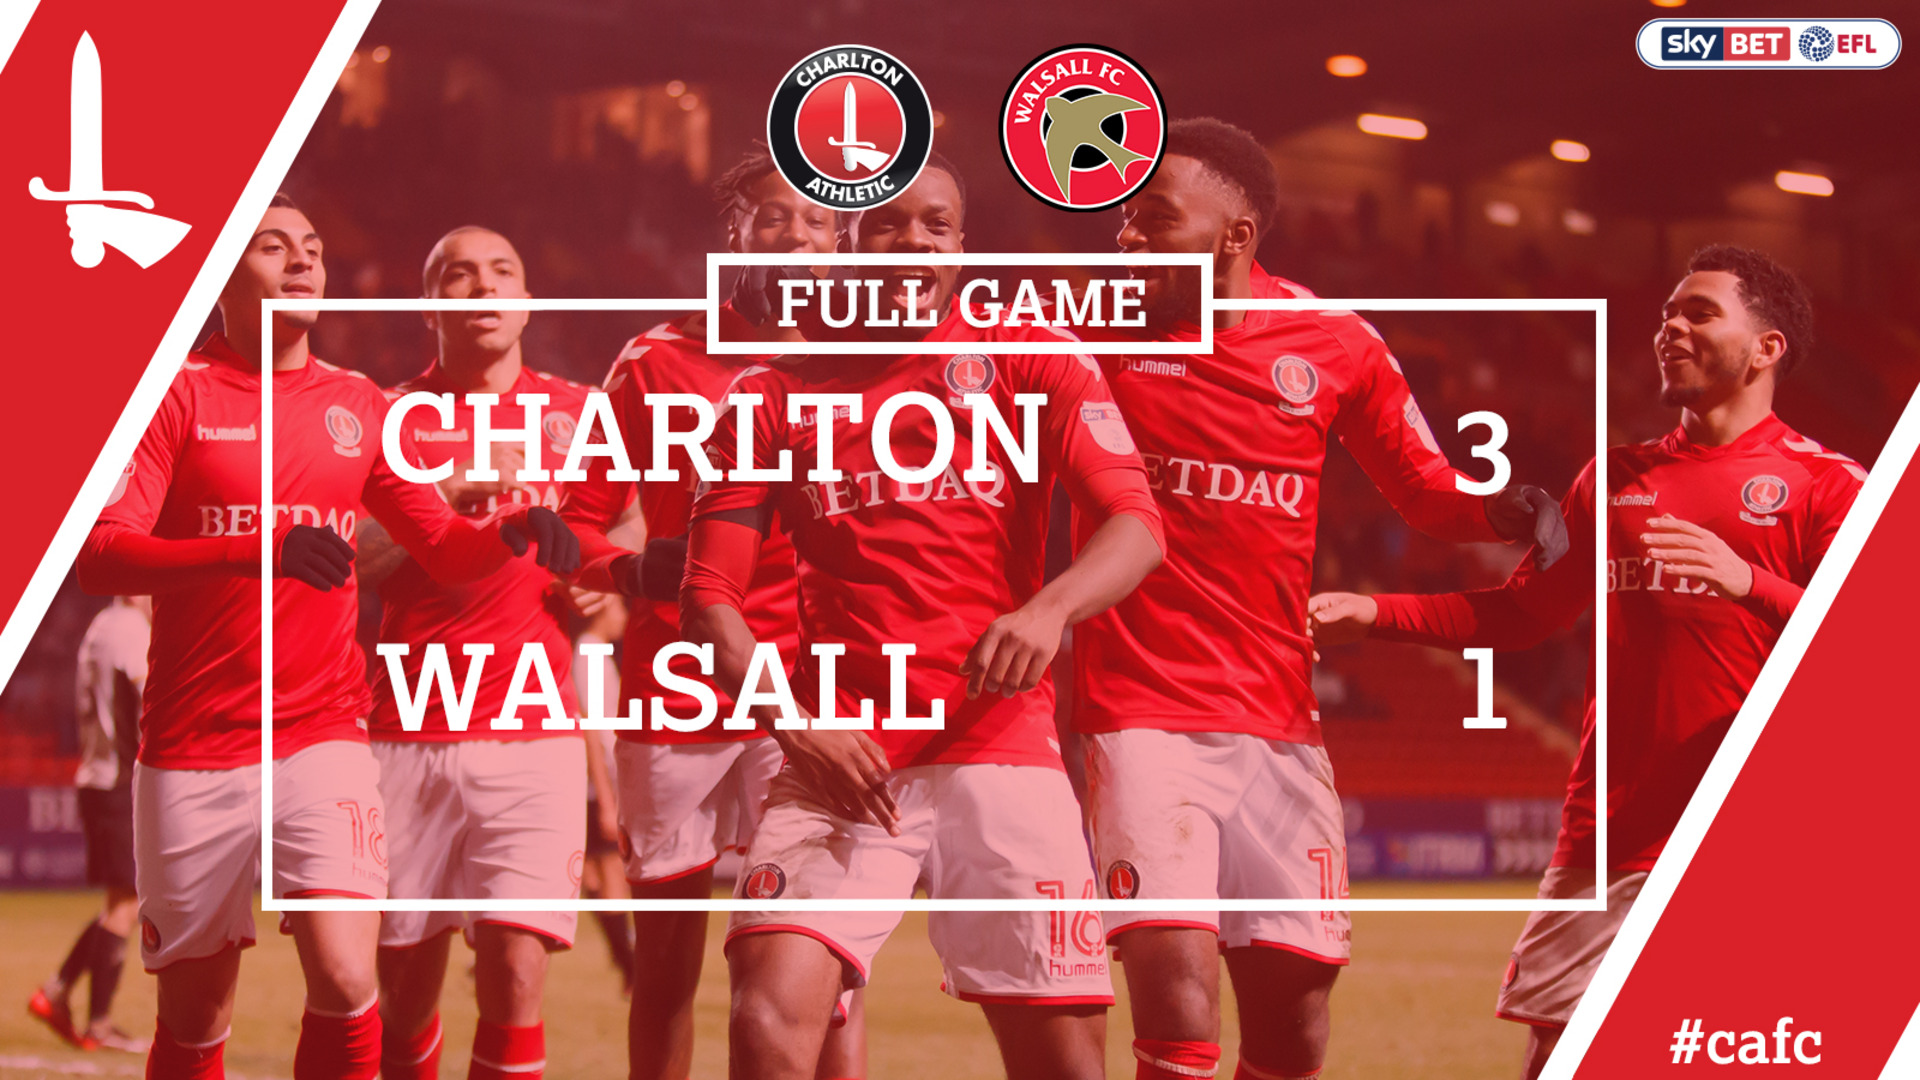 FULL GAME | Charlton 3 Walsall 1 (Jan 2018)